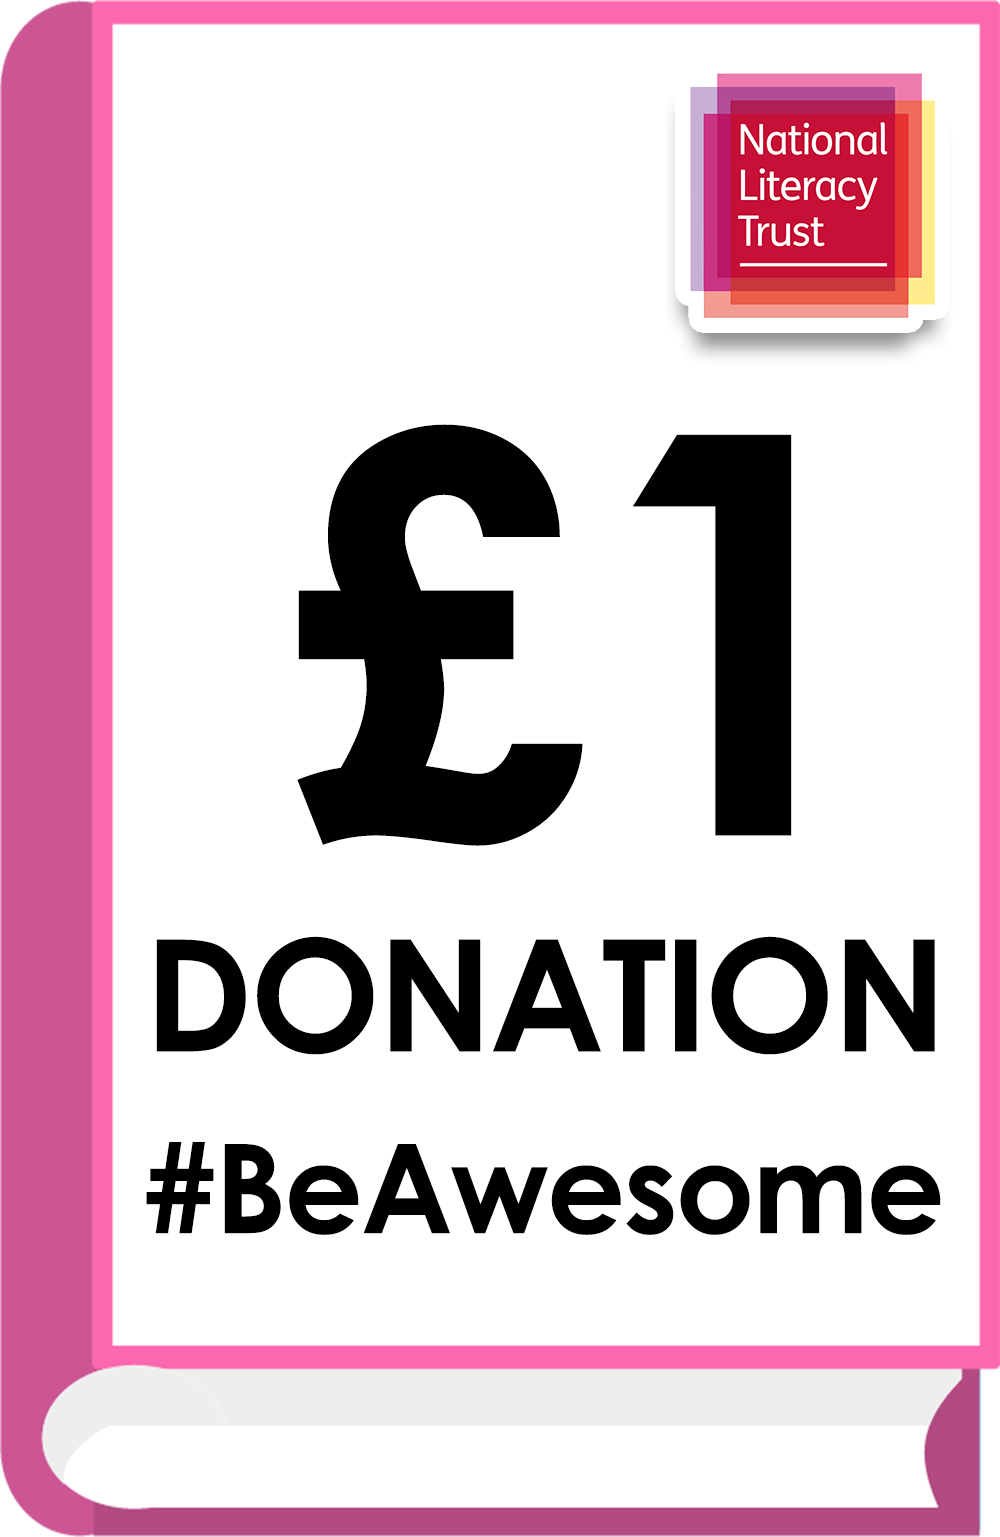 Donate £1.00 Pounds to the National Literacy Trust (Covid Impact Appeal Campaign)